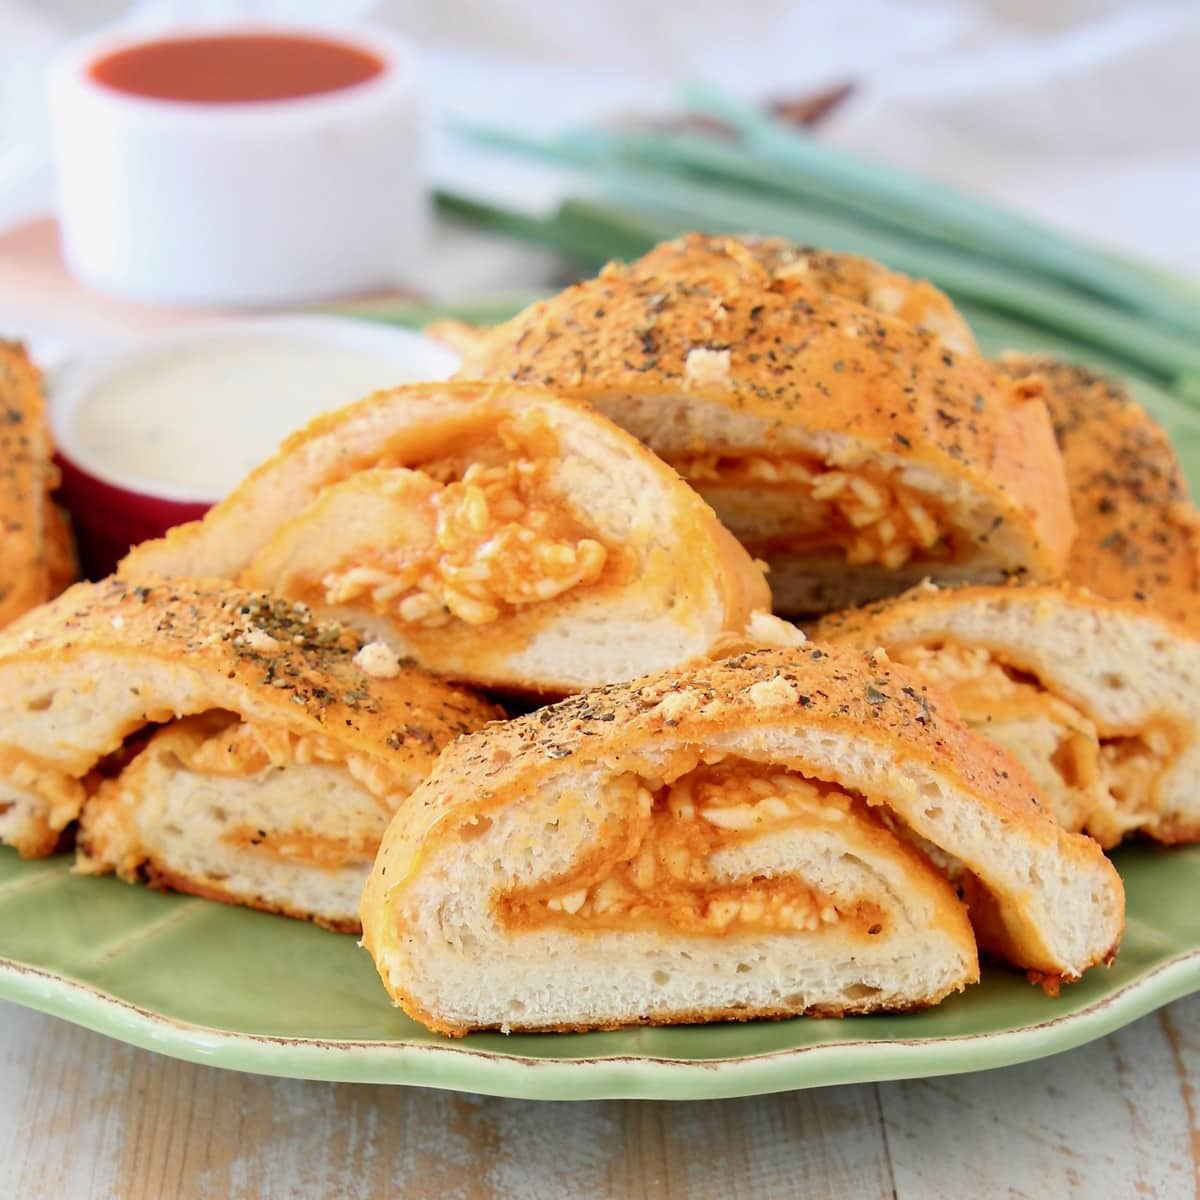 Pizza bread roll filled with buffalo sauce and cheese, sliced into pieces on a green plate with a ramekin of buffalo sauce and green onions